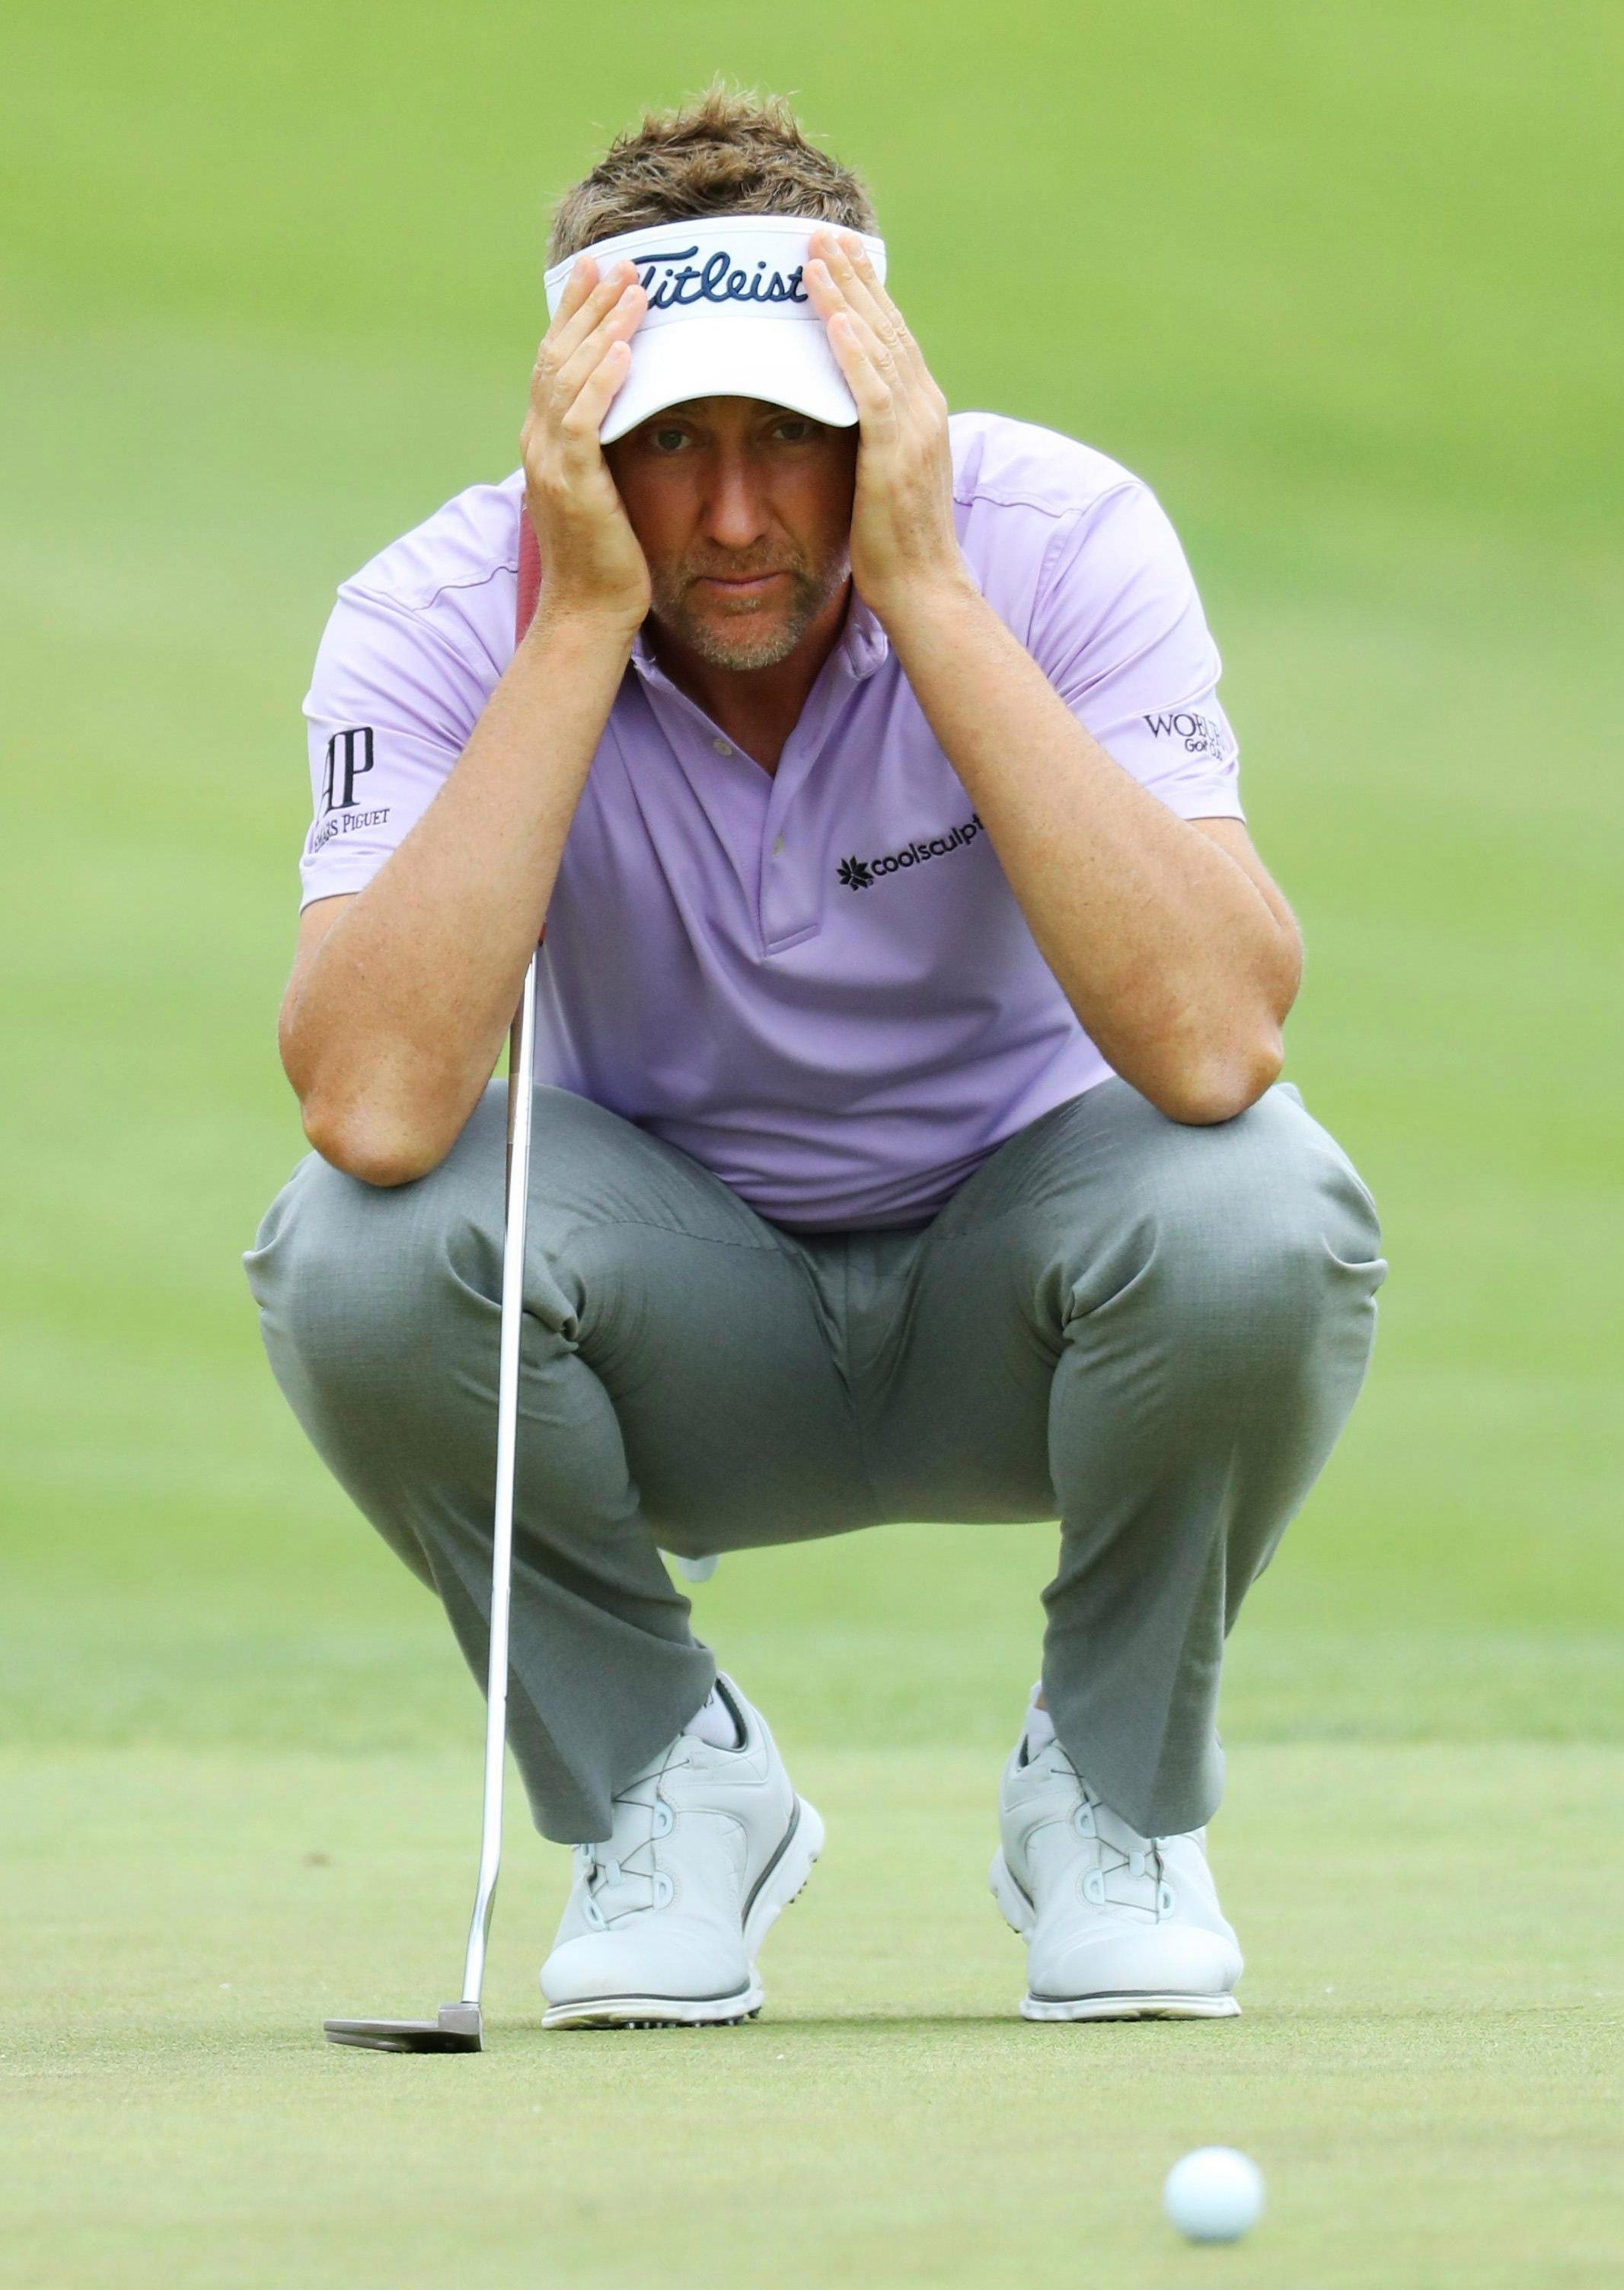 Ian Poulter hit a seven on his penultimate hole that cost him dear